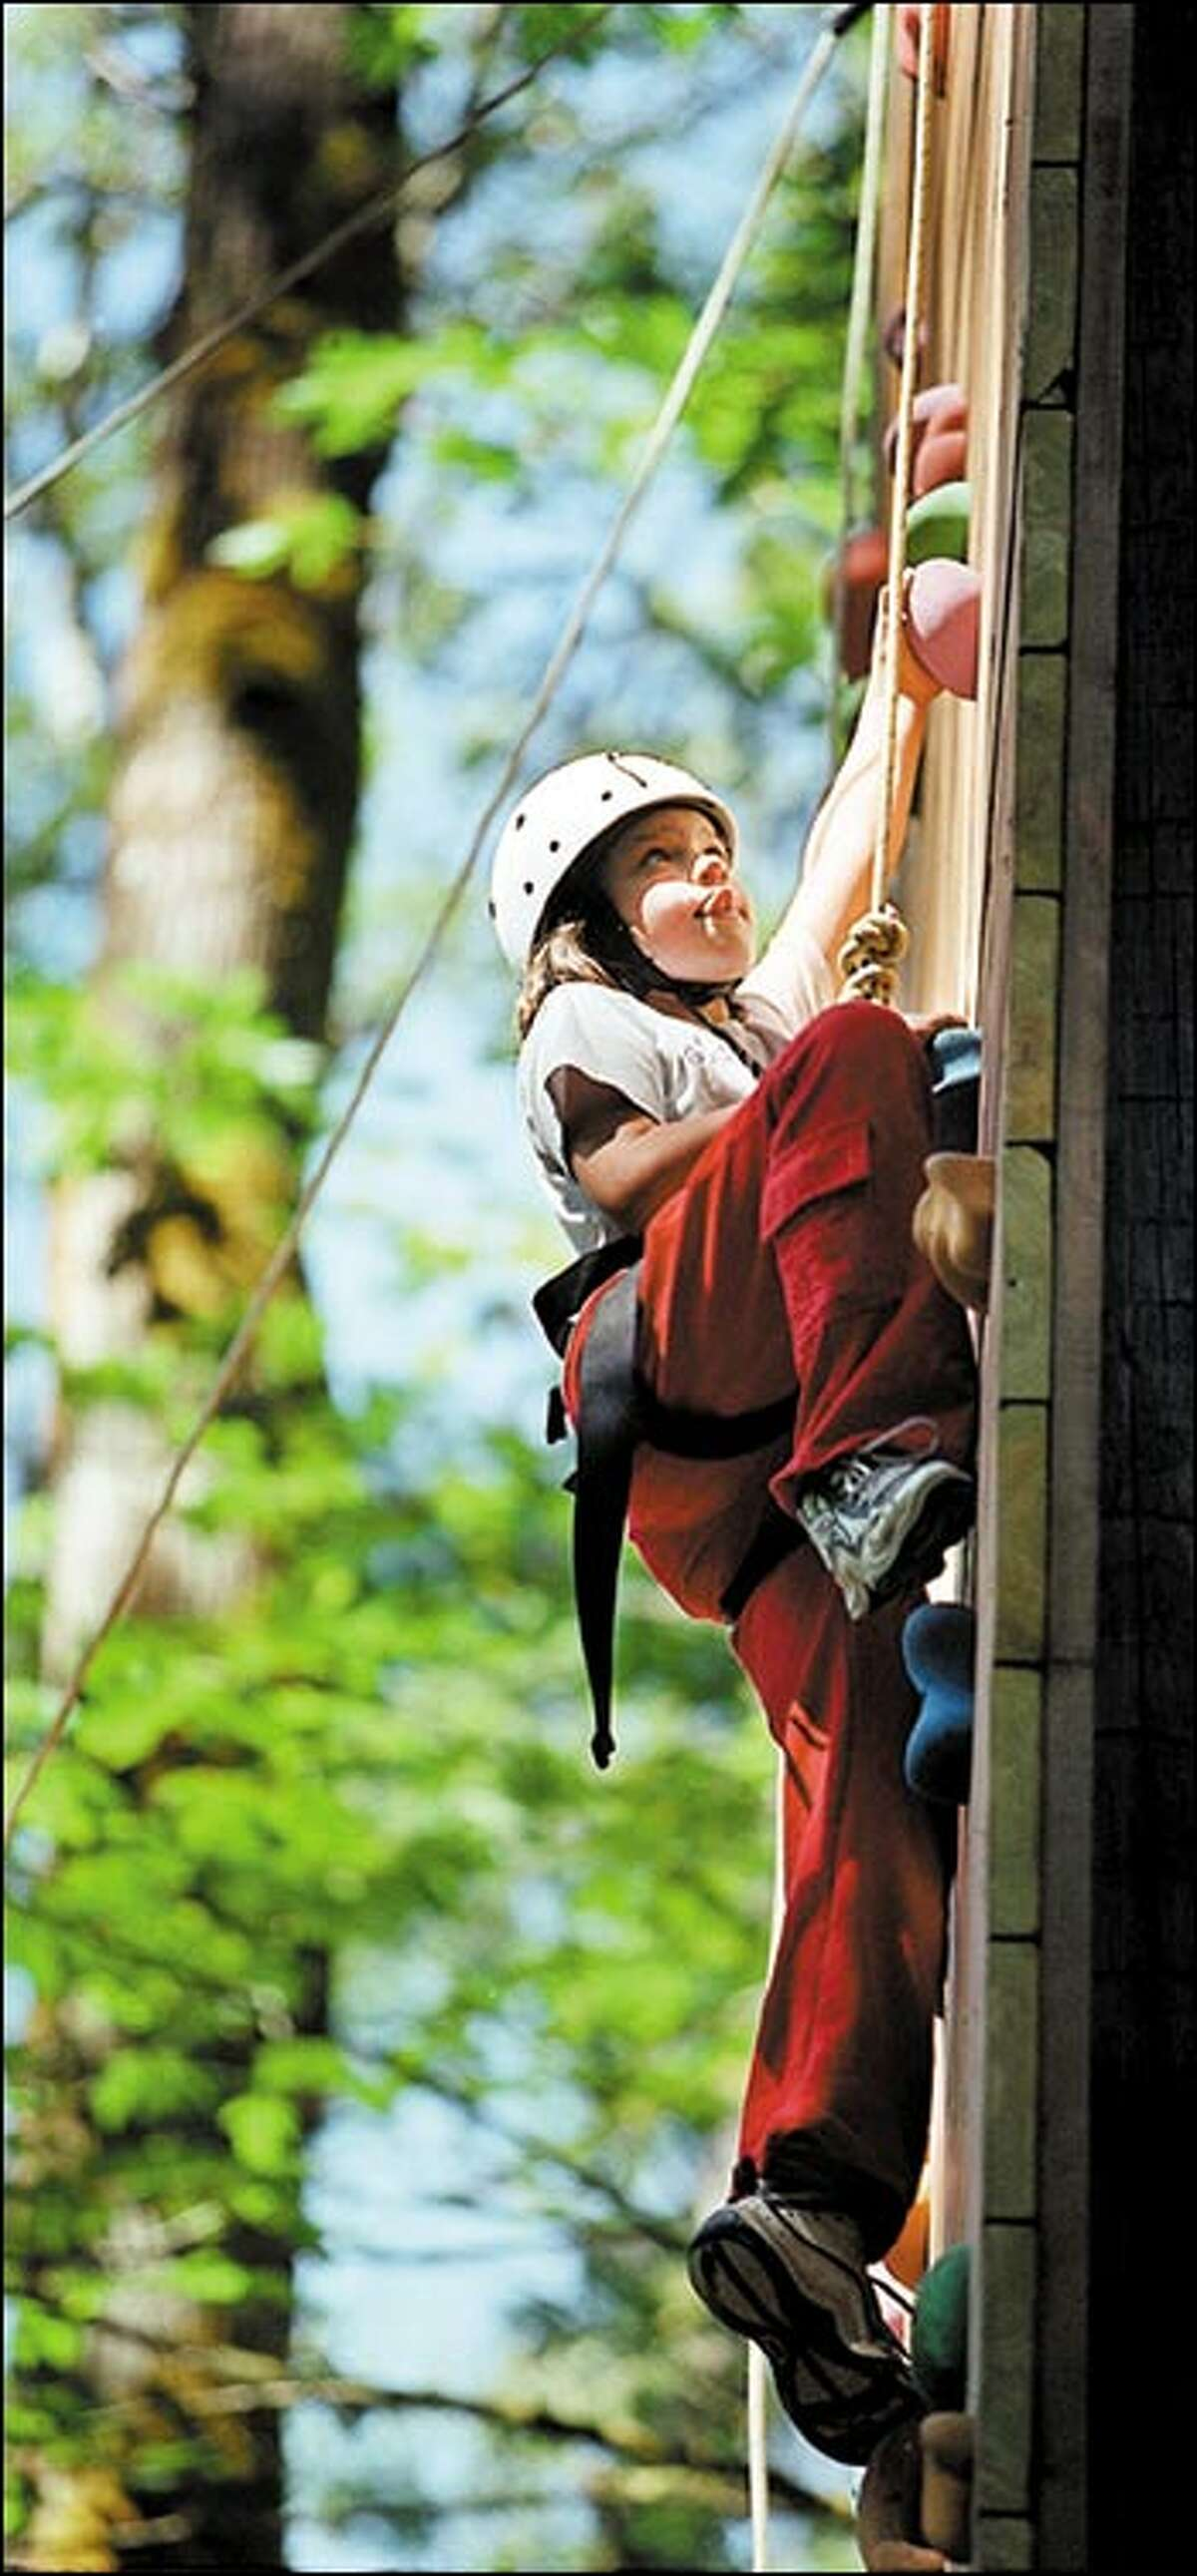 Jen Booth, 10, scales a 40-foot wall at Camp River Ranch in Carnation. The camp is part of a makeover for the Girl Scouts, an 89-year-old institution that has shown a remarkable ability to change with the times.